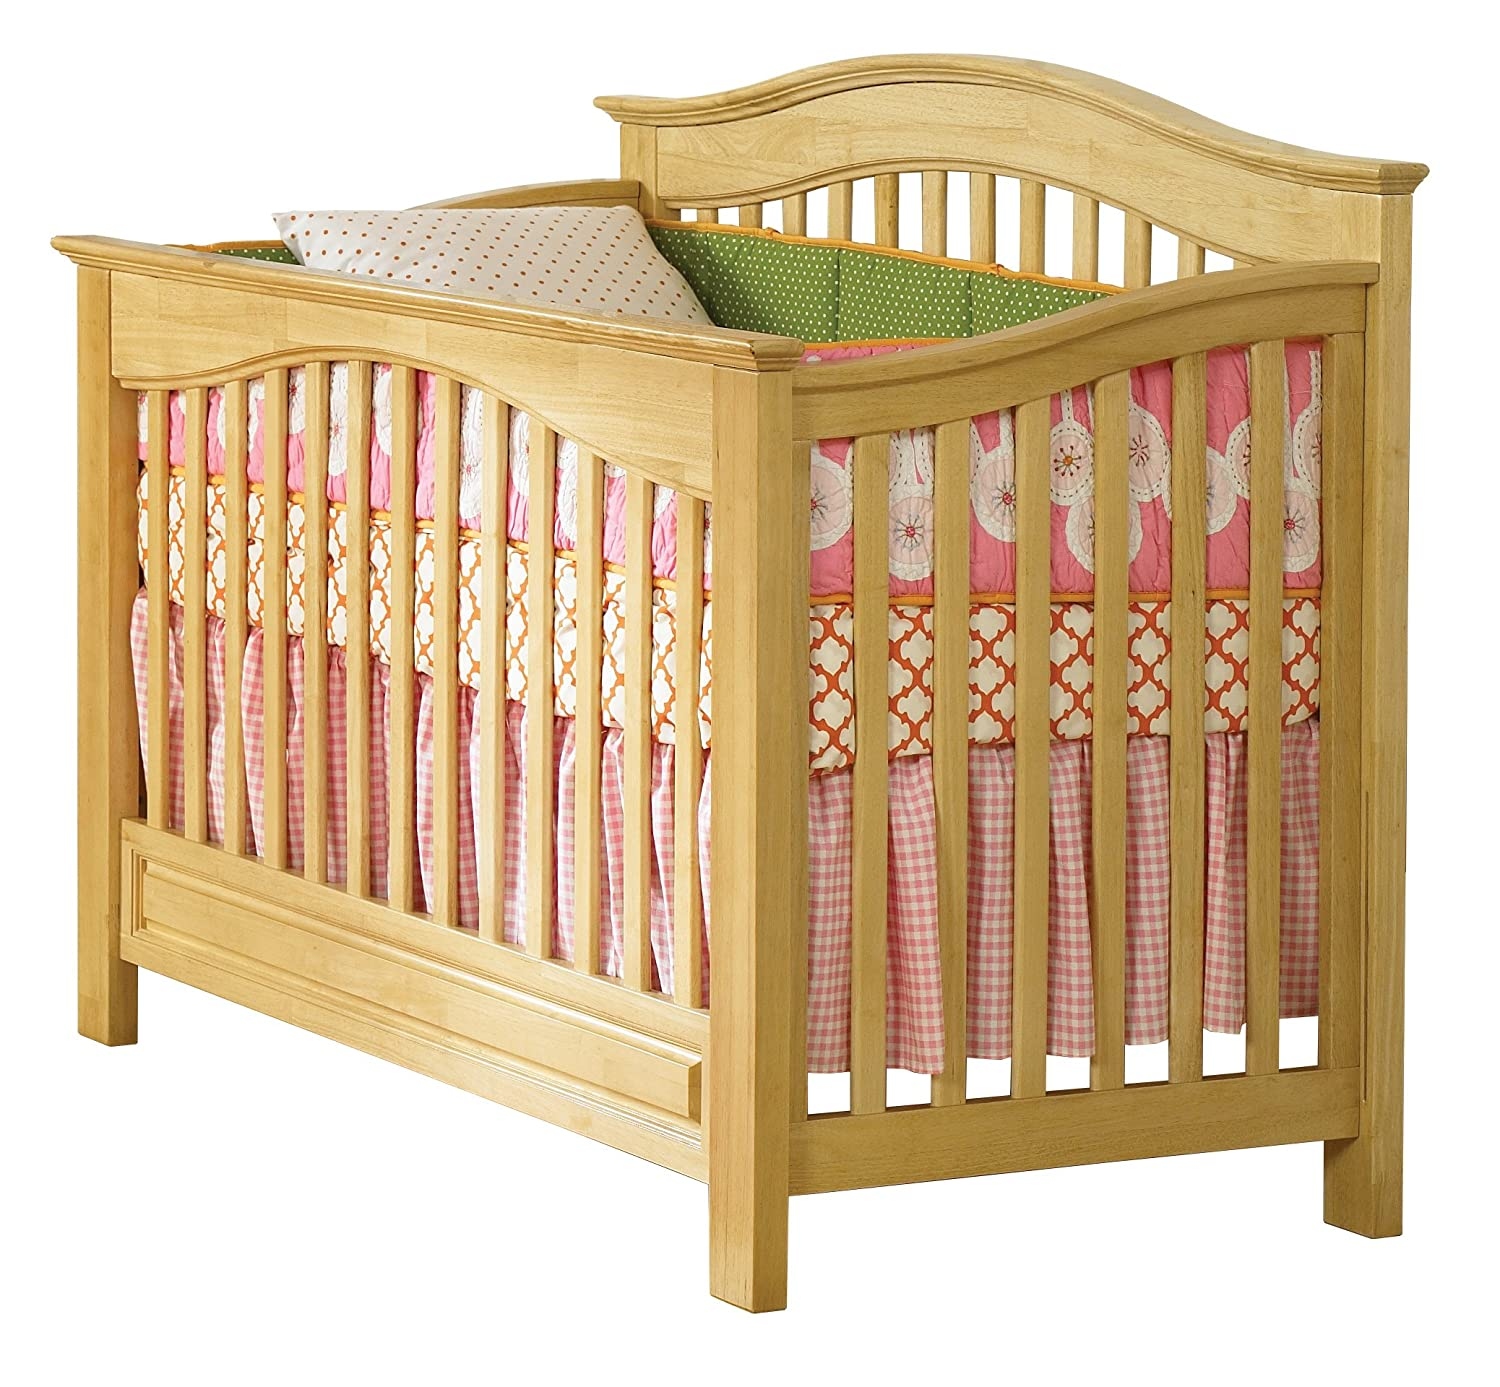 Amazon.com : Atlantic Furniture Windsor Convertible Crib, Natural Maple  (Discontinued by Manufacturer) : Bunk Beds For Boys : Baby - Amazon.com : Atlantic Furniture Windsor Convertible Crib, Natural